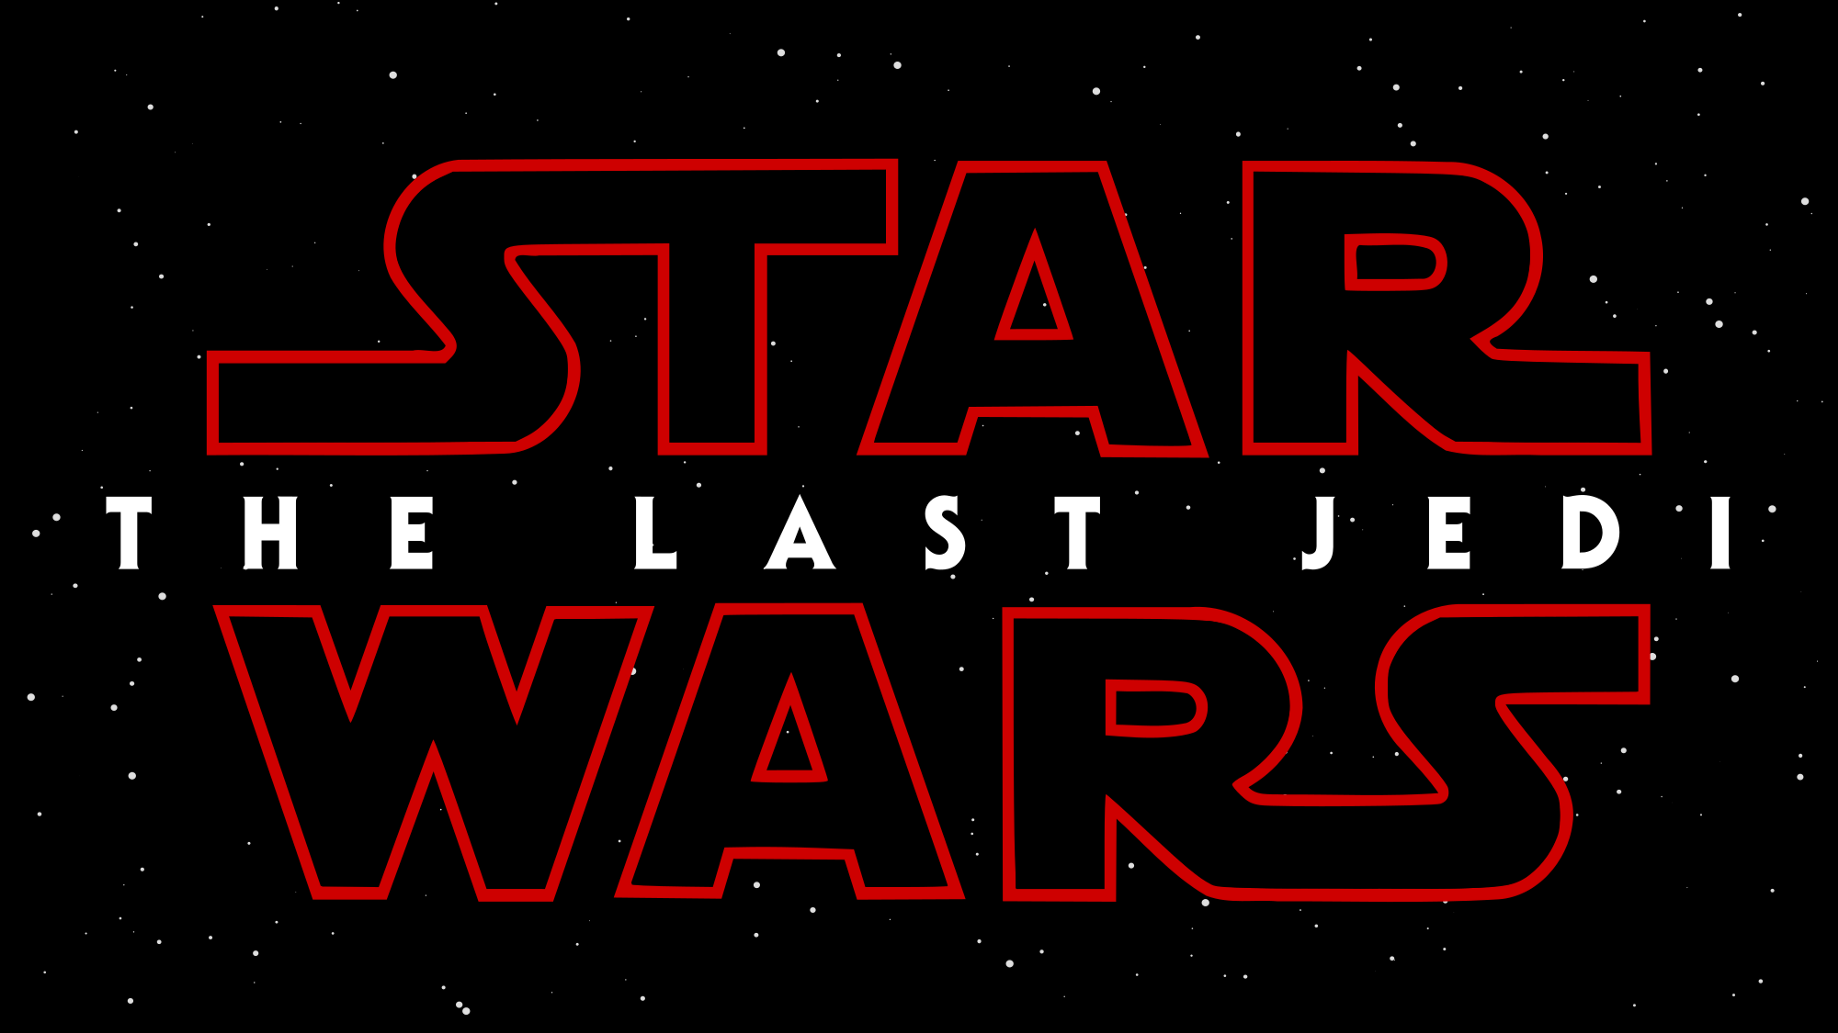 Star Wars: The Last Jedi is out  Here's What I Thought